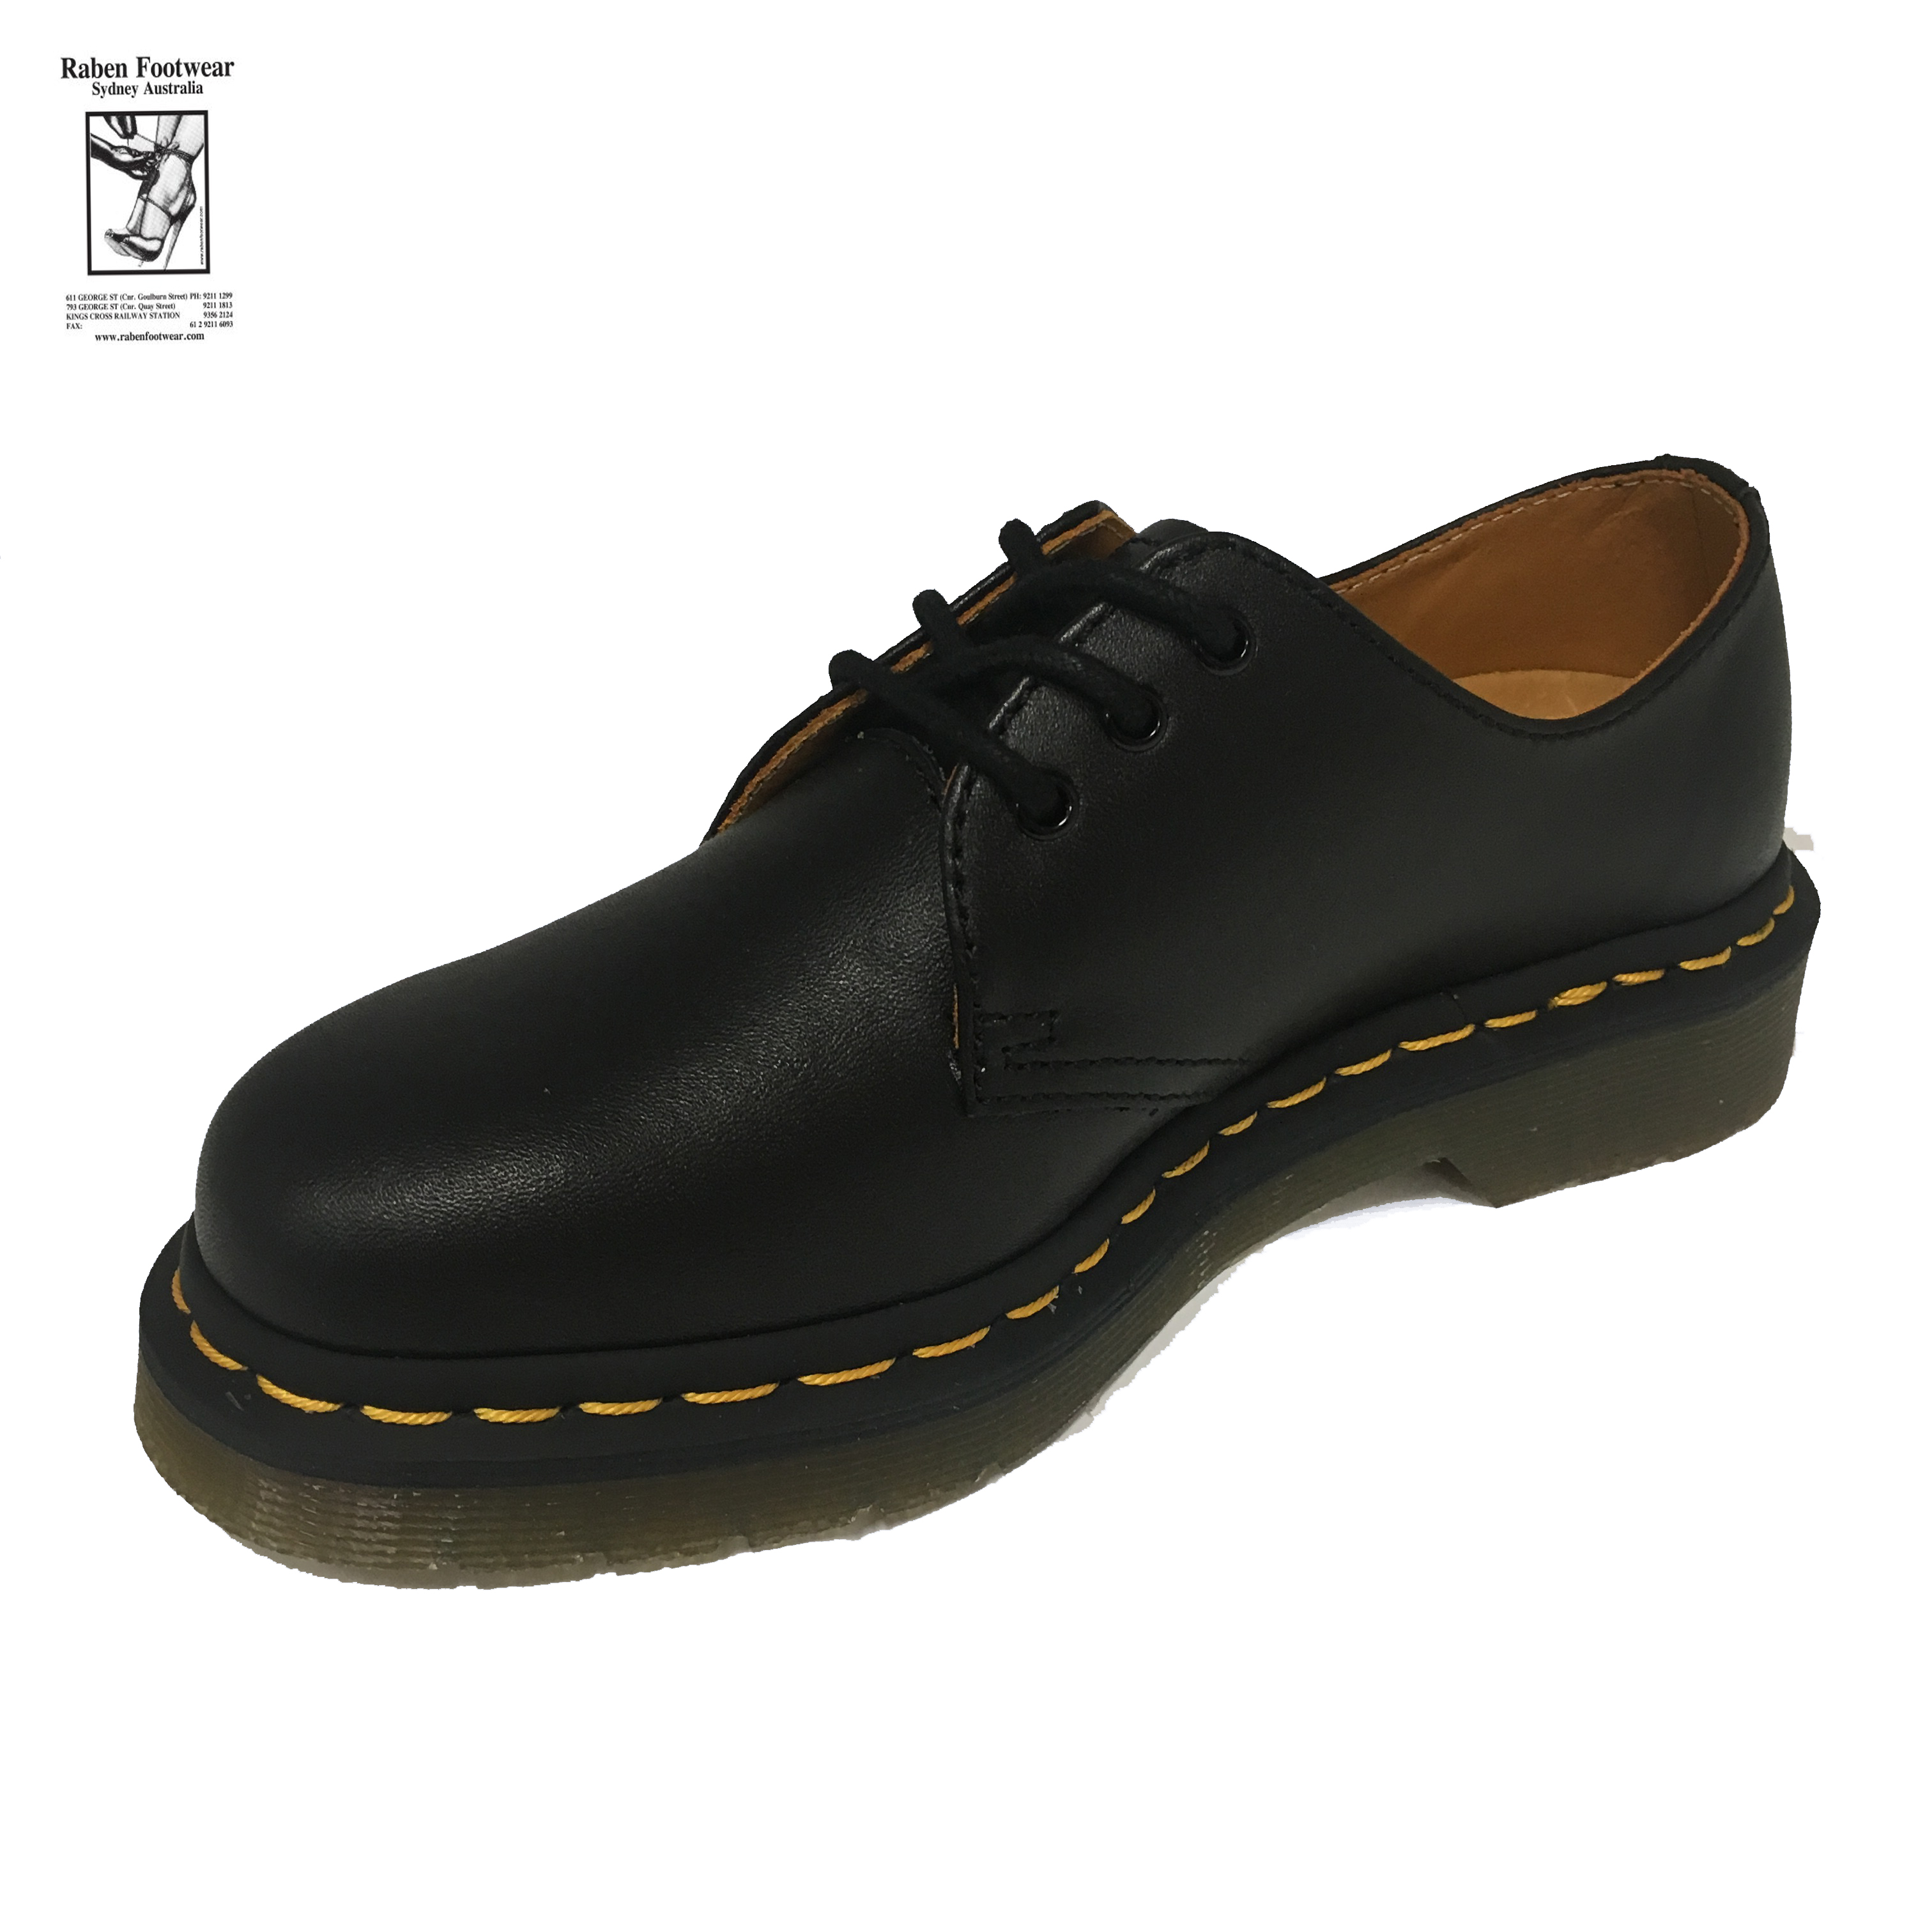 Raben Shoes For Sale